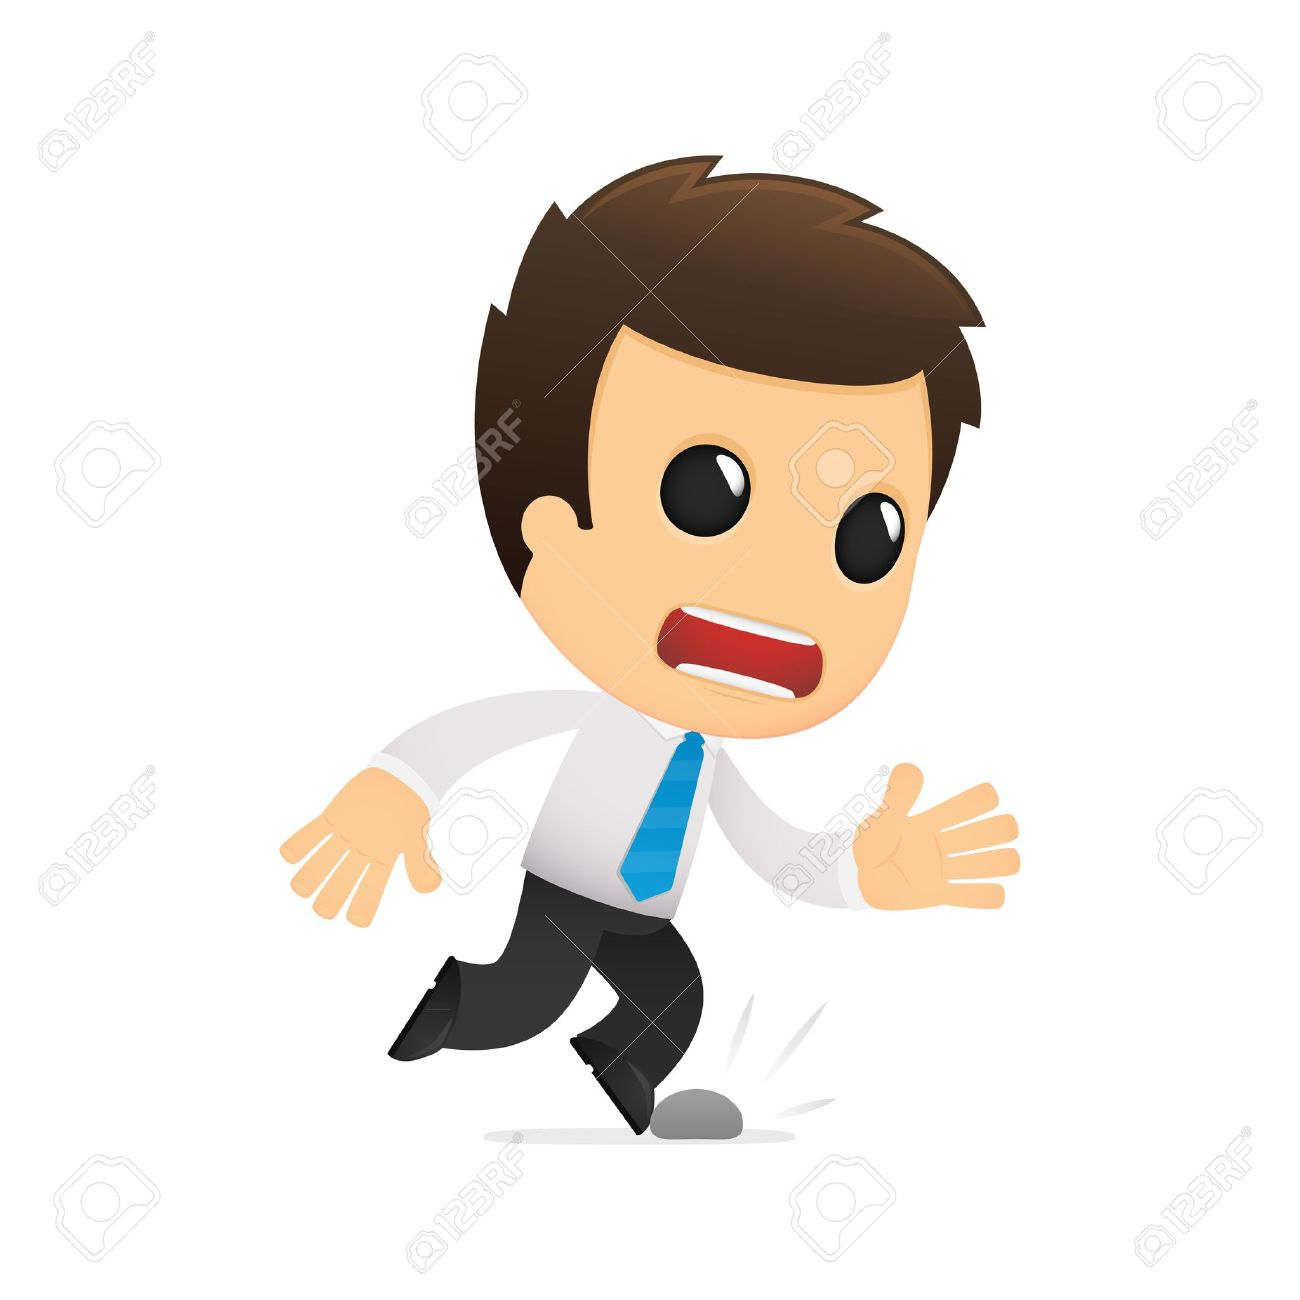 Funny Cartoon Office Worker Royalty Free Cliparts Vectors And Stock Illustration Image 12488432